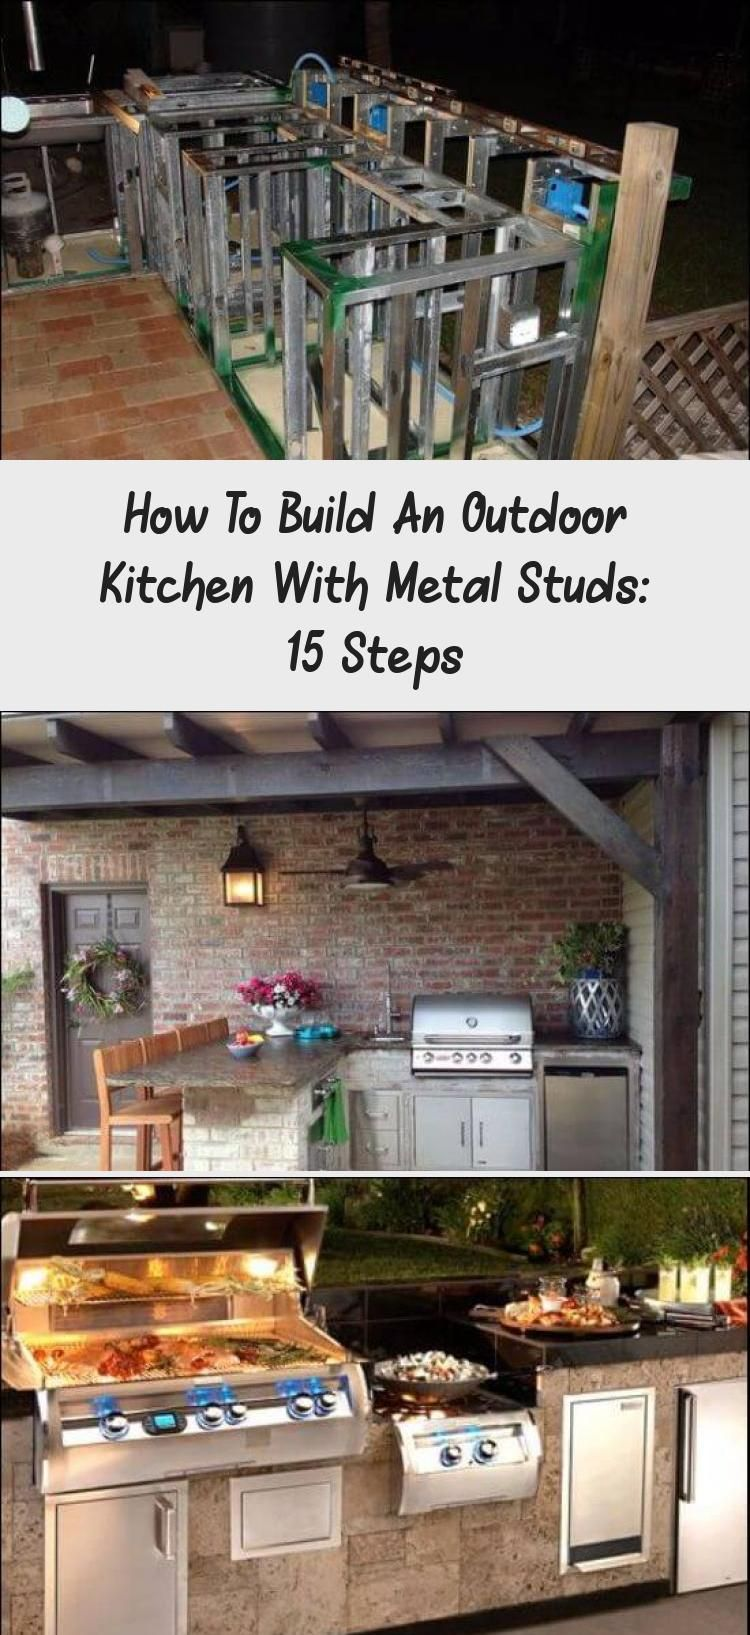 Do You Know How To Build An Outdoor Kitchen With Metal Studs If Not You Re In The Right Place Foll Build Outdoor Kitchen Outdoor Kitchen Diy Outdoor Kitchen